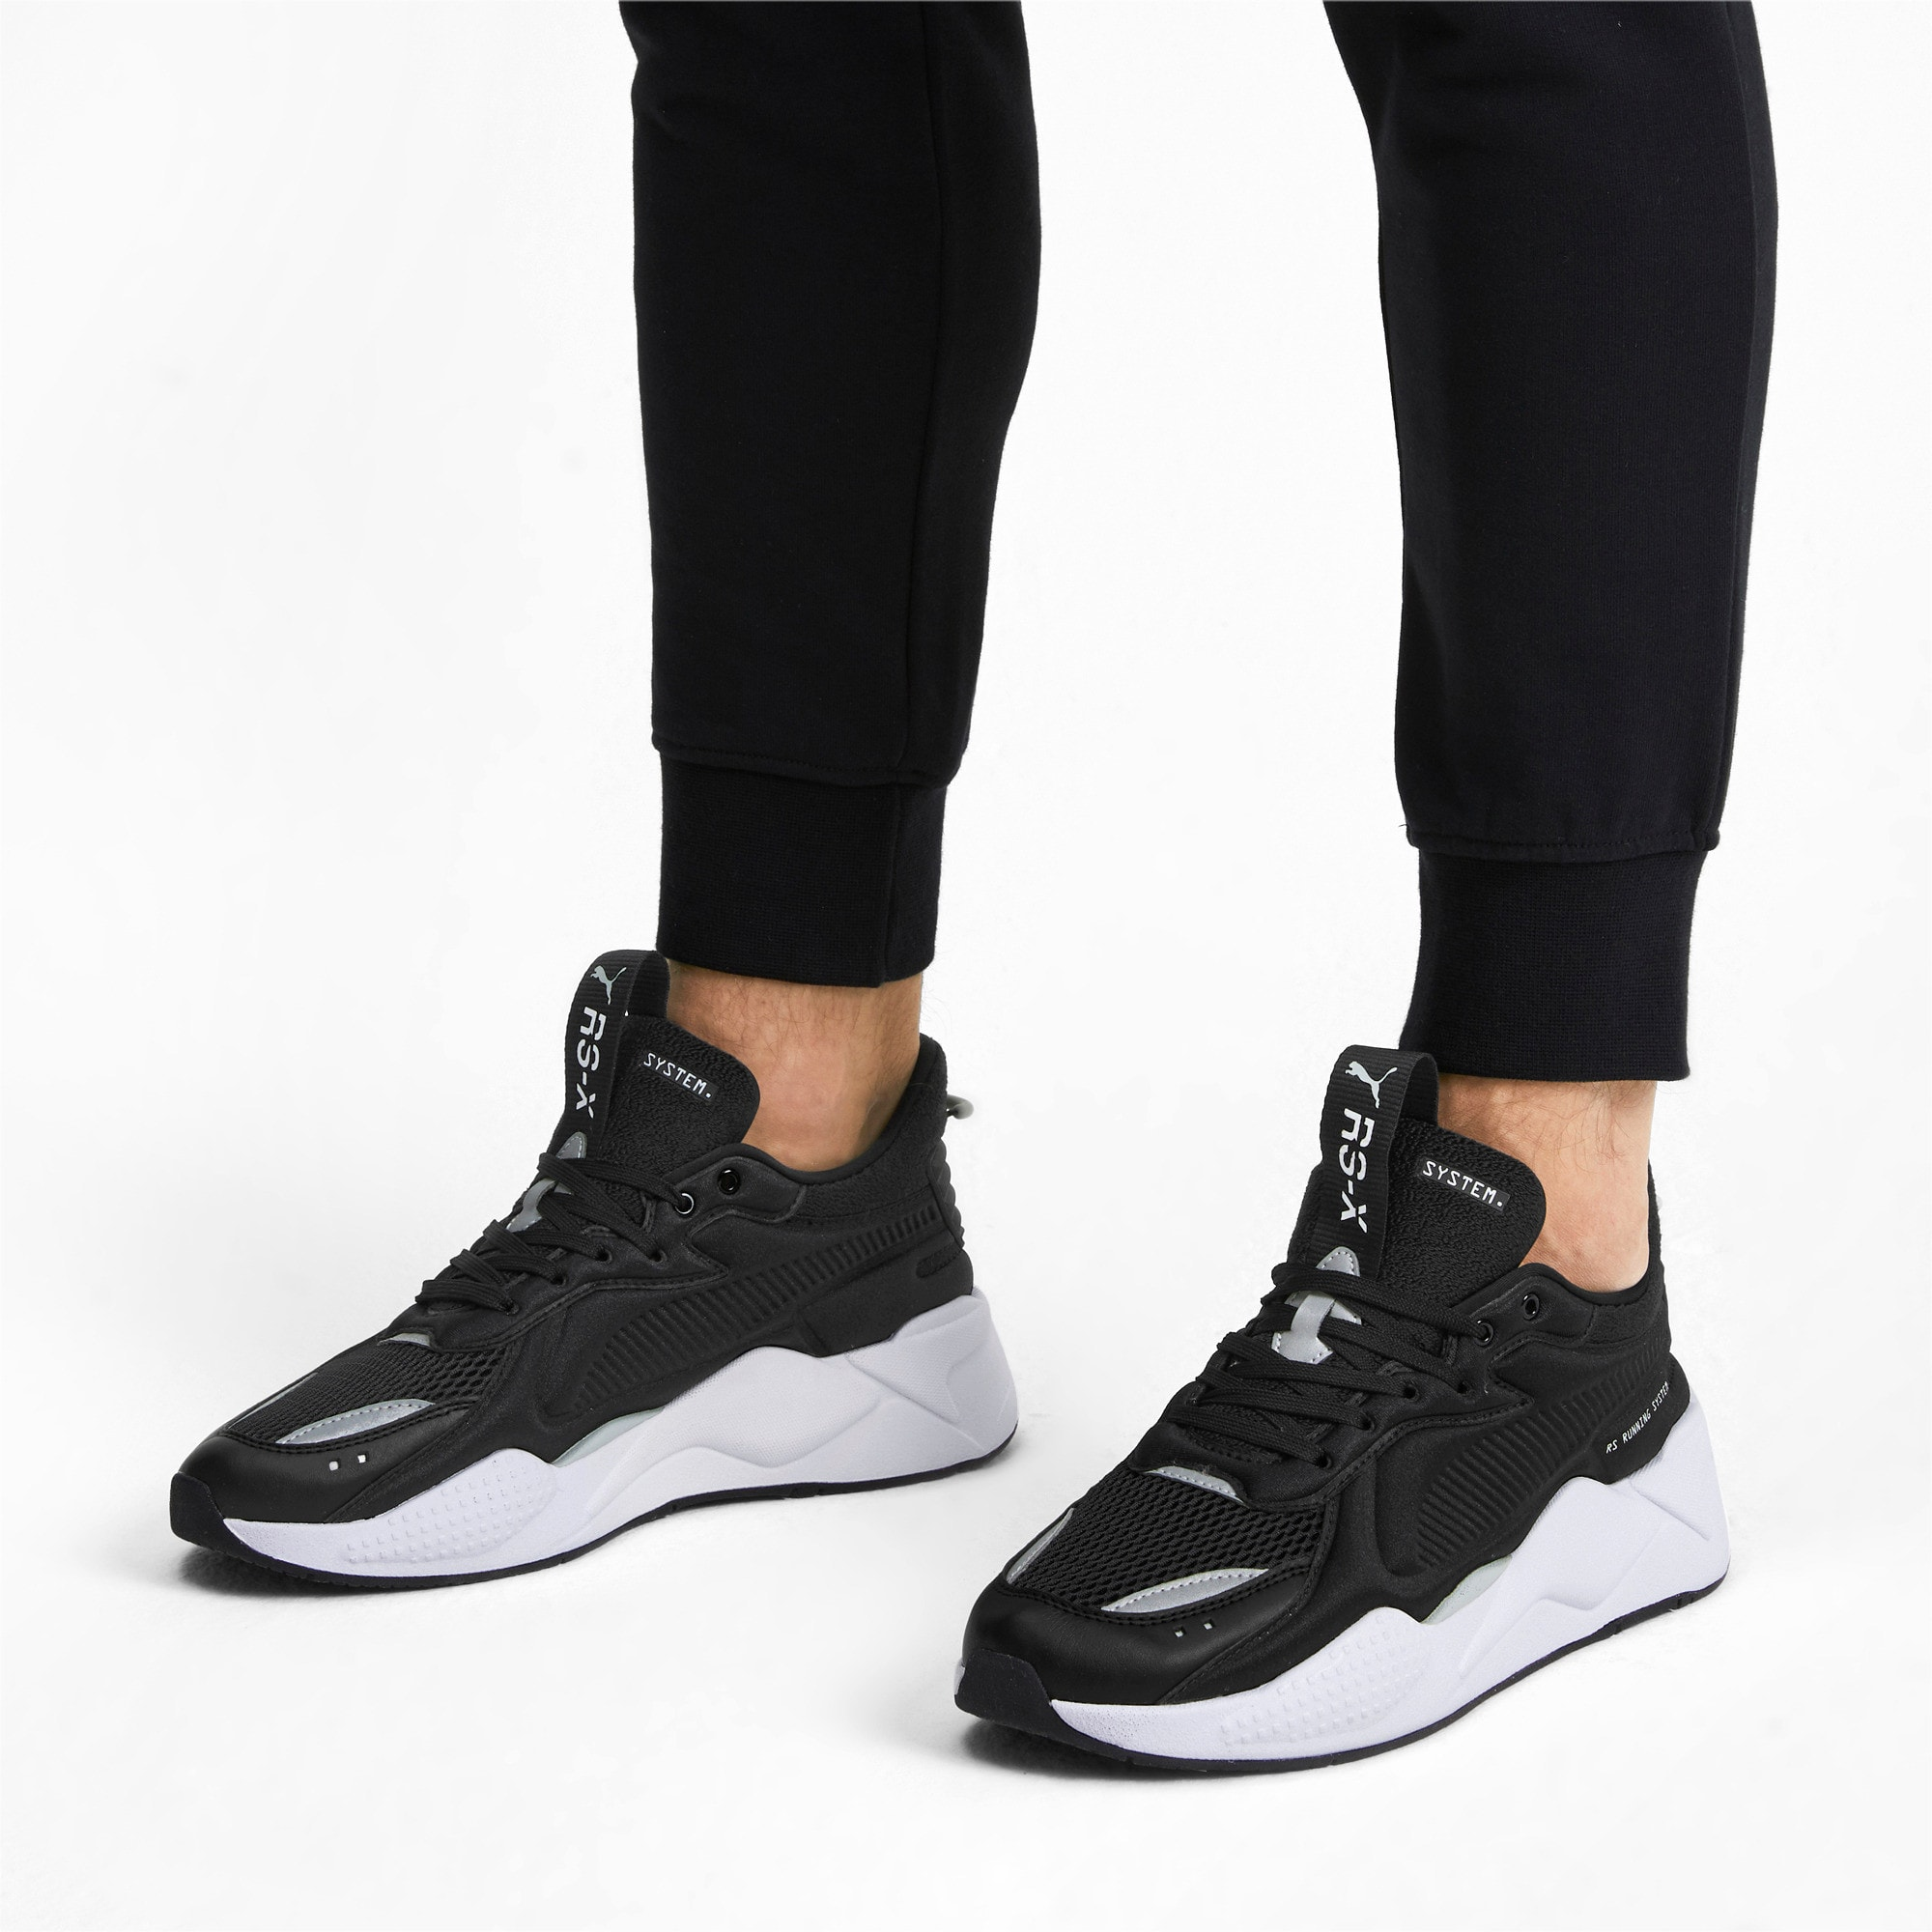 Thumbnail 2 of RS-X Softcase Trainers, Puma Black-Puma White, medium